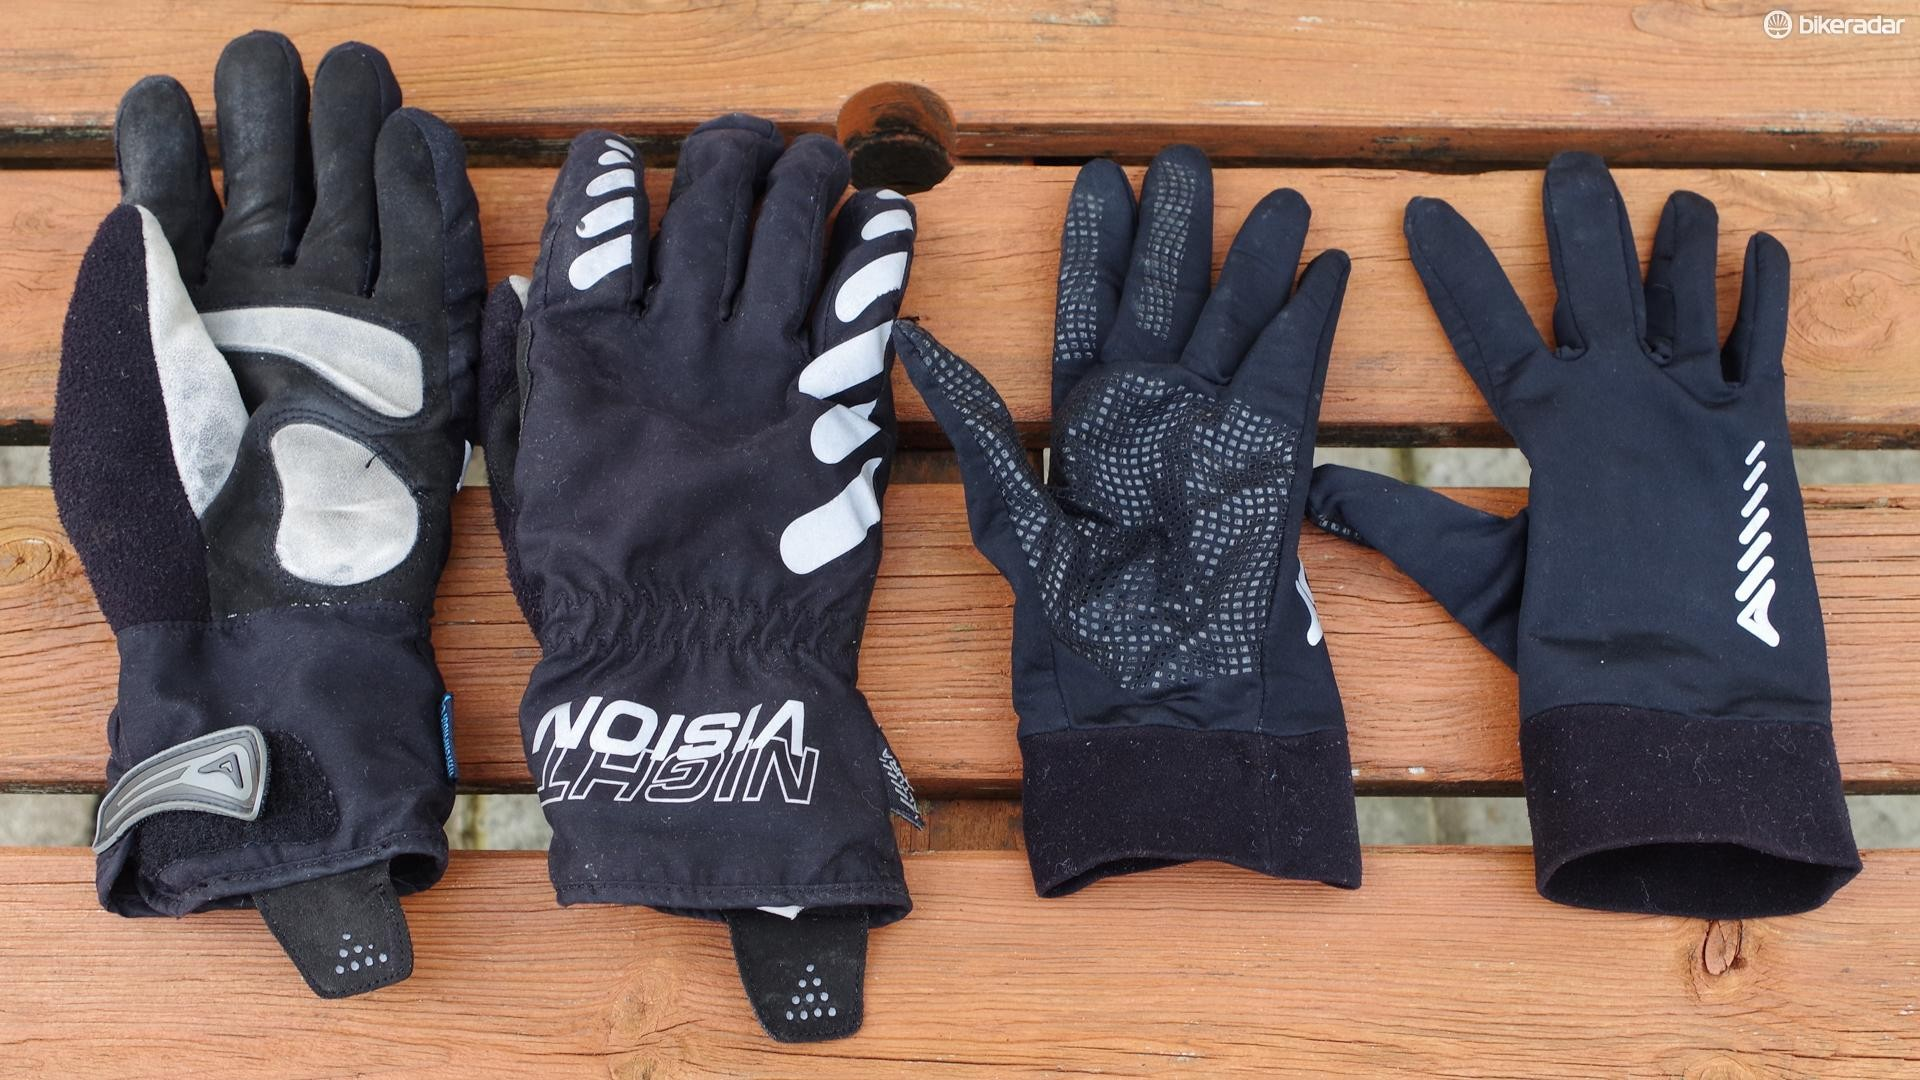 Altura's Nightvision gloves have seen me through the darkest of days